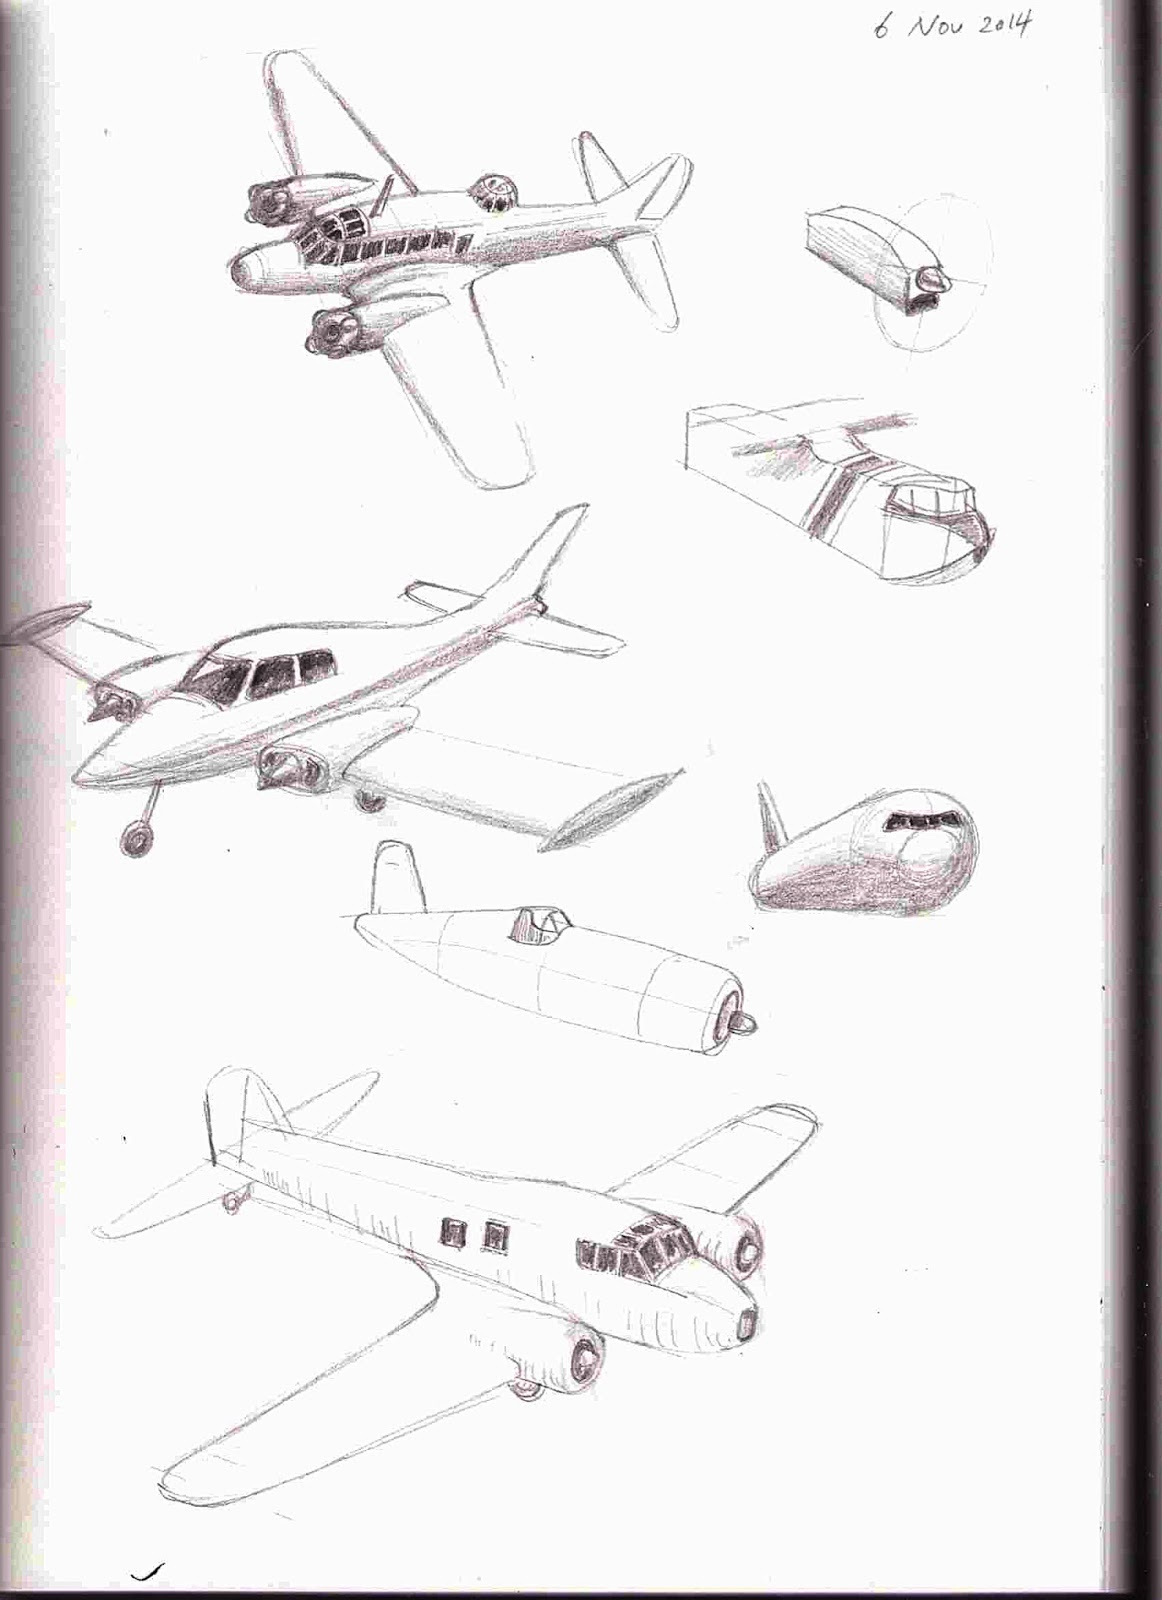 Sketchbook drawings of various aeroplanes